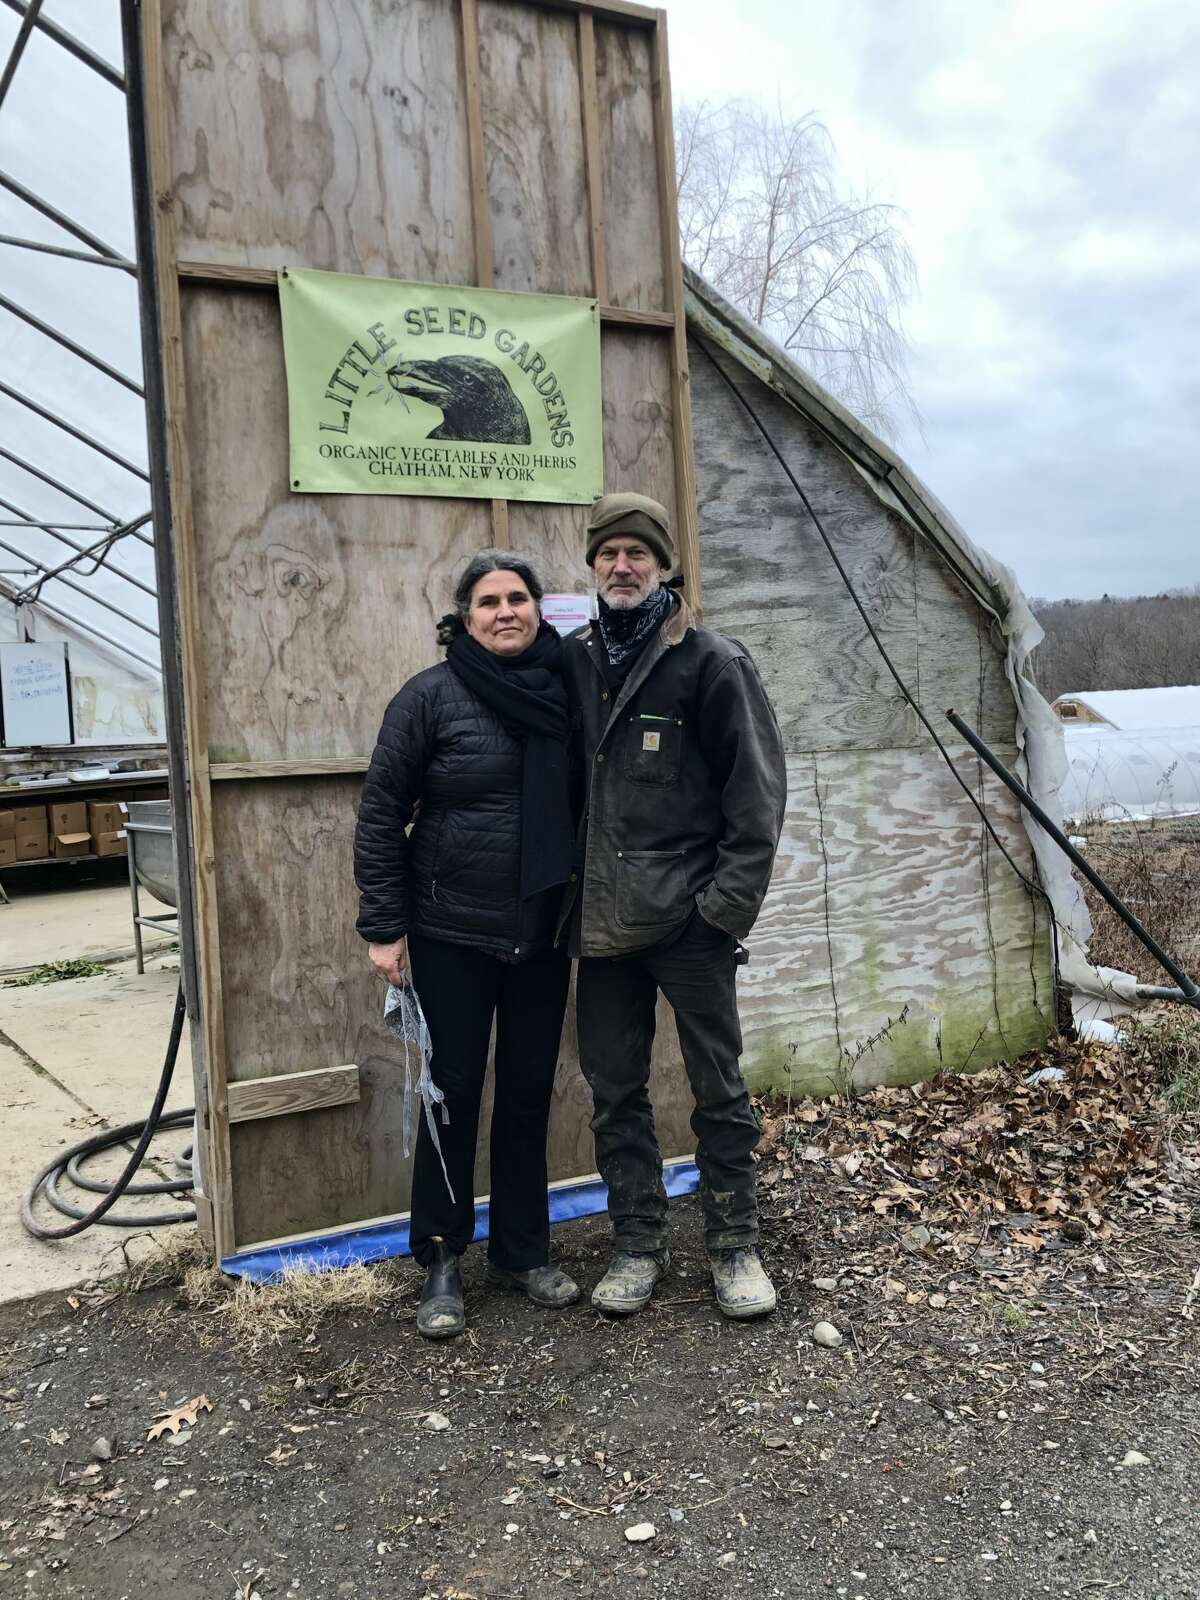 Randall lineback cattle, a rare breed, can be seen at Little Seed Farm in Chatham, run by Claudia Kenny and Willy Denner.